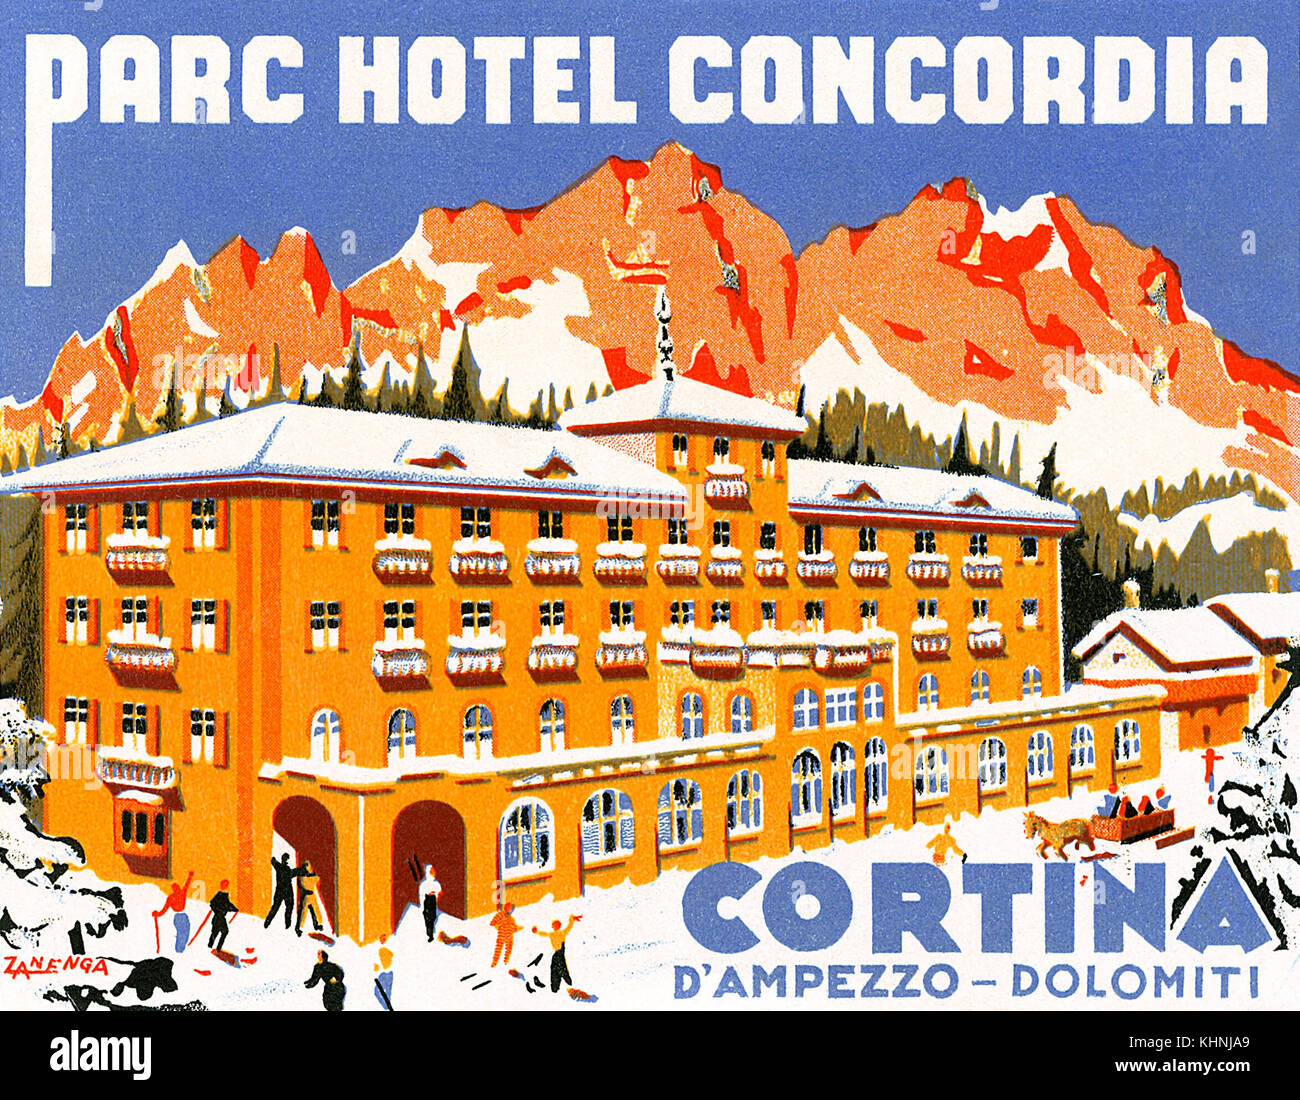 Vintage luggage label for the Parc Hotel Concordia in Cortina d'Ampezzo in the Italian Alps. Now called Hotel - Stock Image